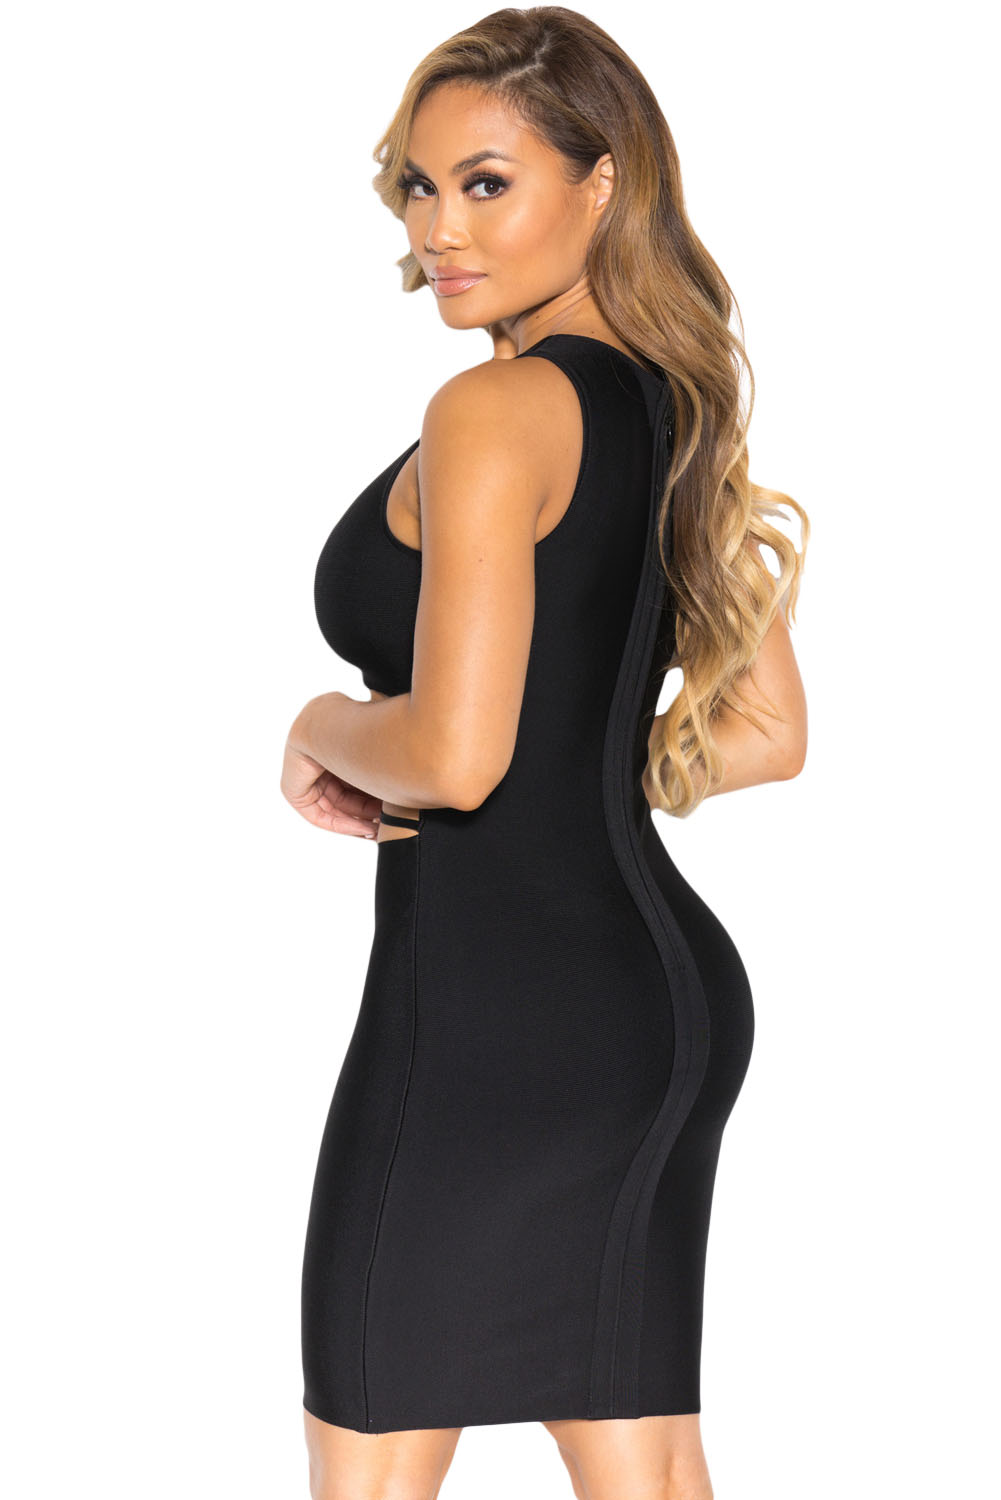 Sexy Little Black Party Bandage Dress  Charming Wear-8916